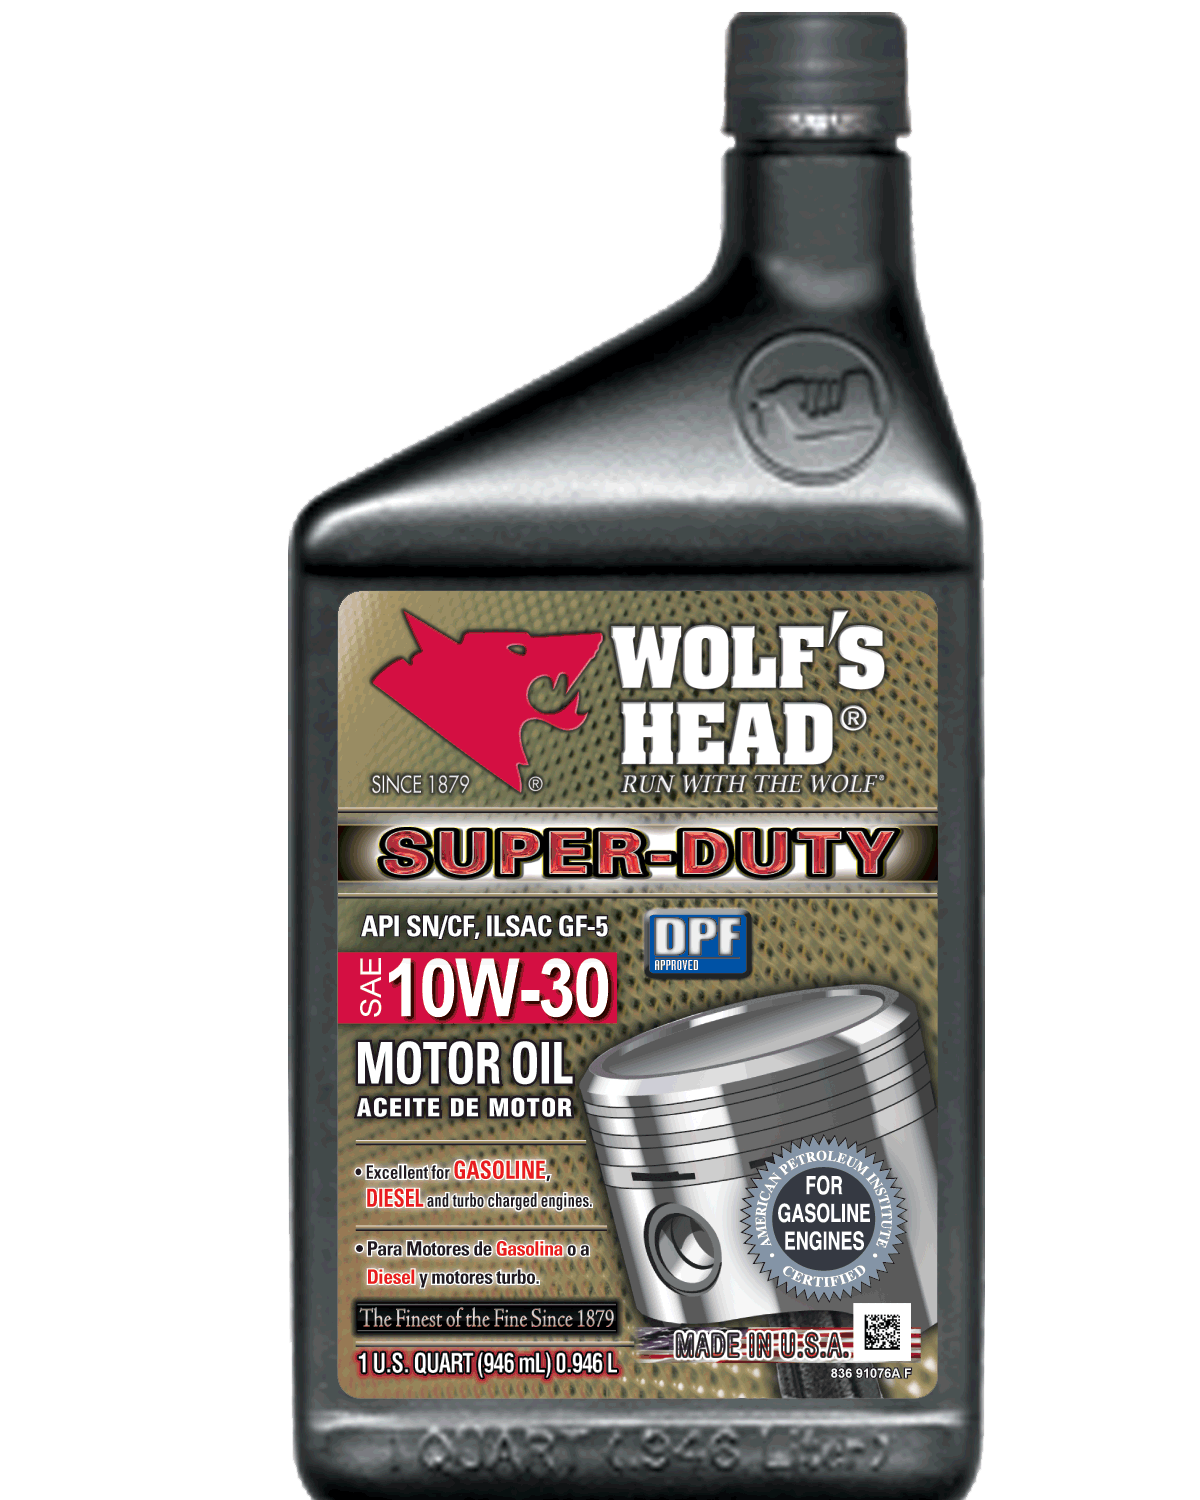 30 Emailoils Contact Usco Ltd Mail: Wolf's Head Super Duty 10W-30 Oil